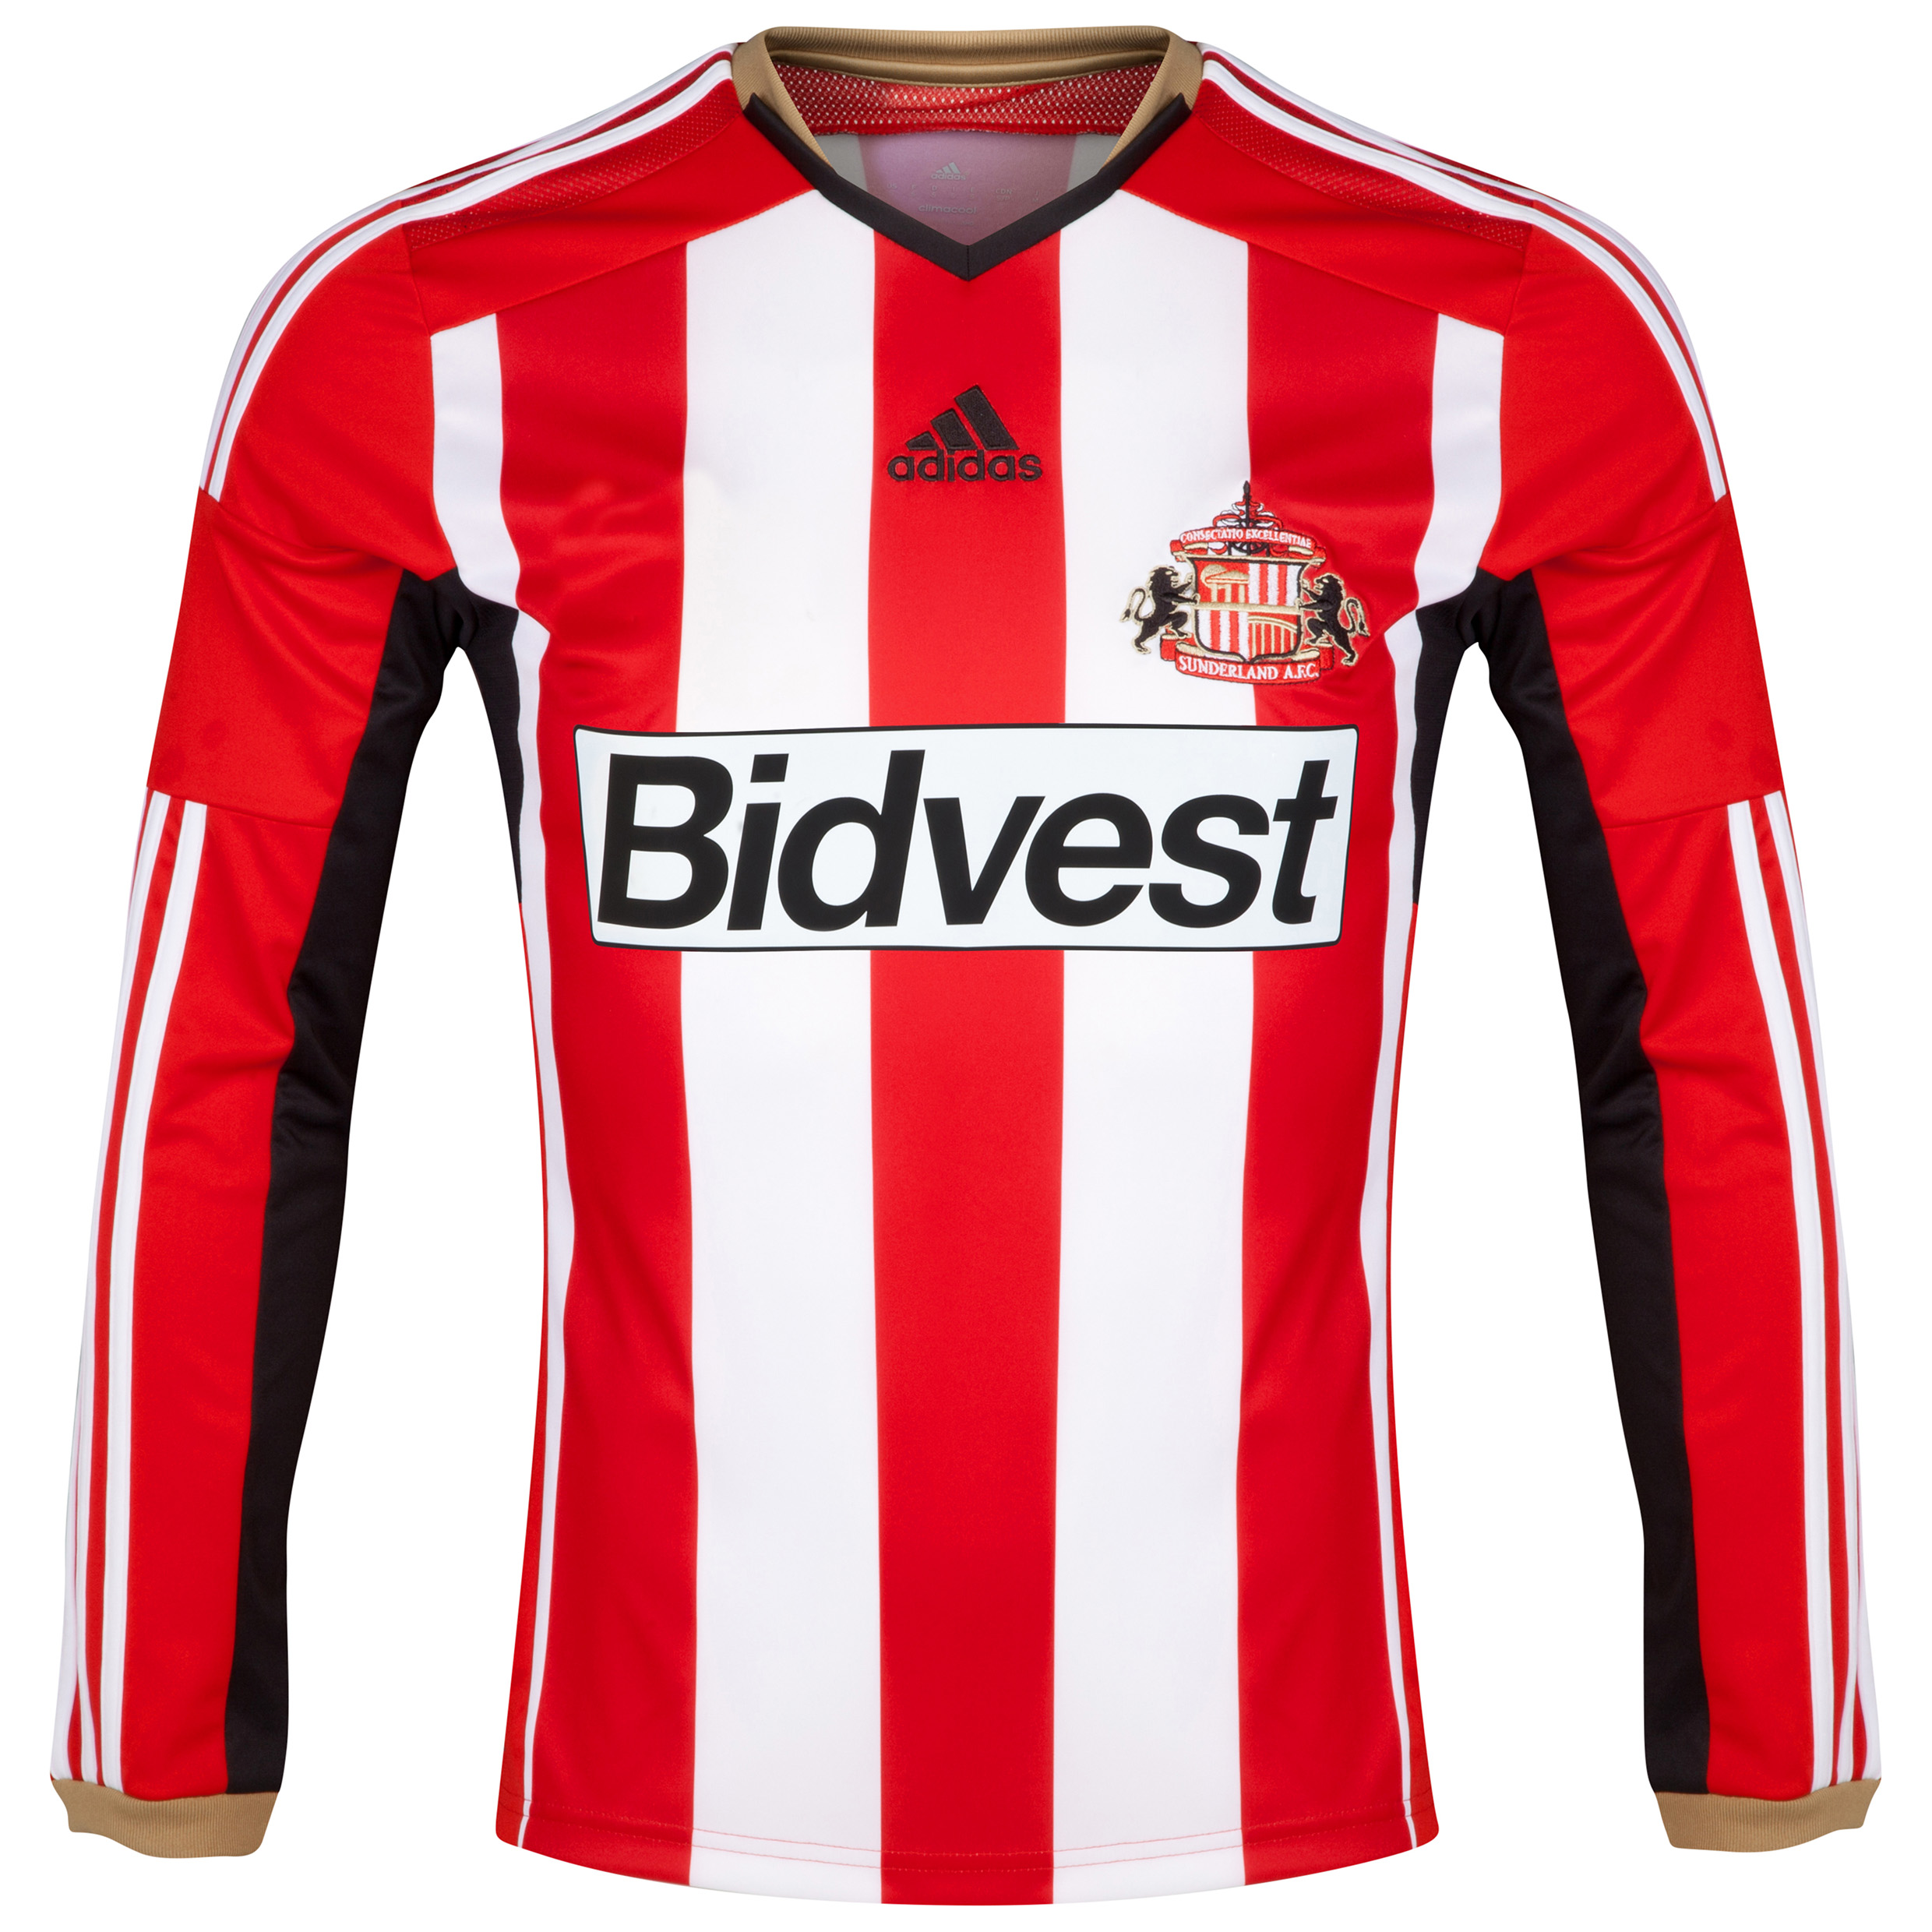 Sunderland Home Shirt 2014/15 - Long Sleeved Red